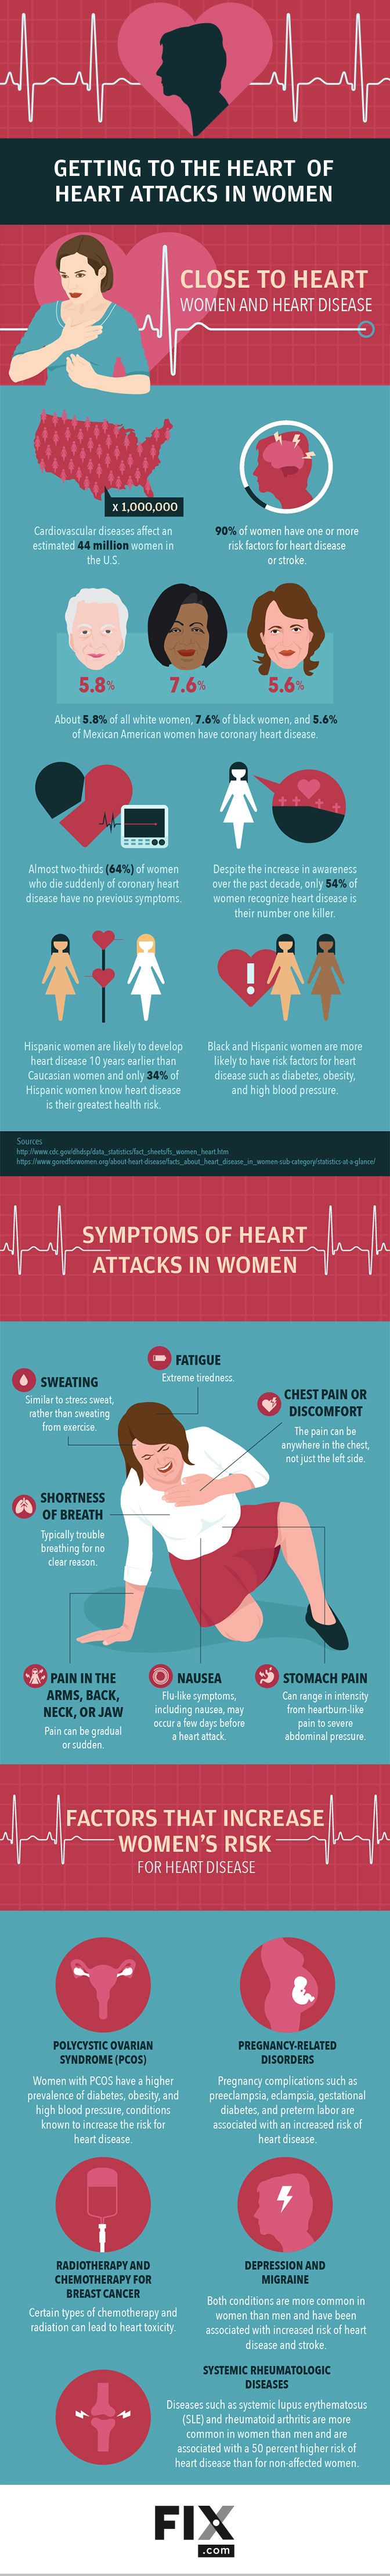 Learn all about the signs, symptoms, and specific risk factors women face with heart disease.